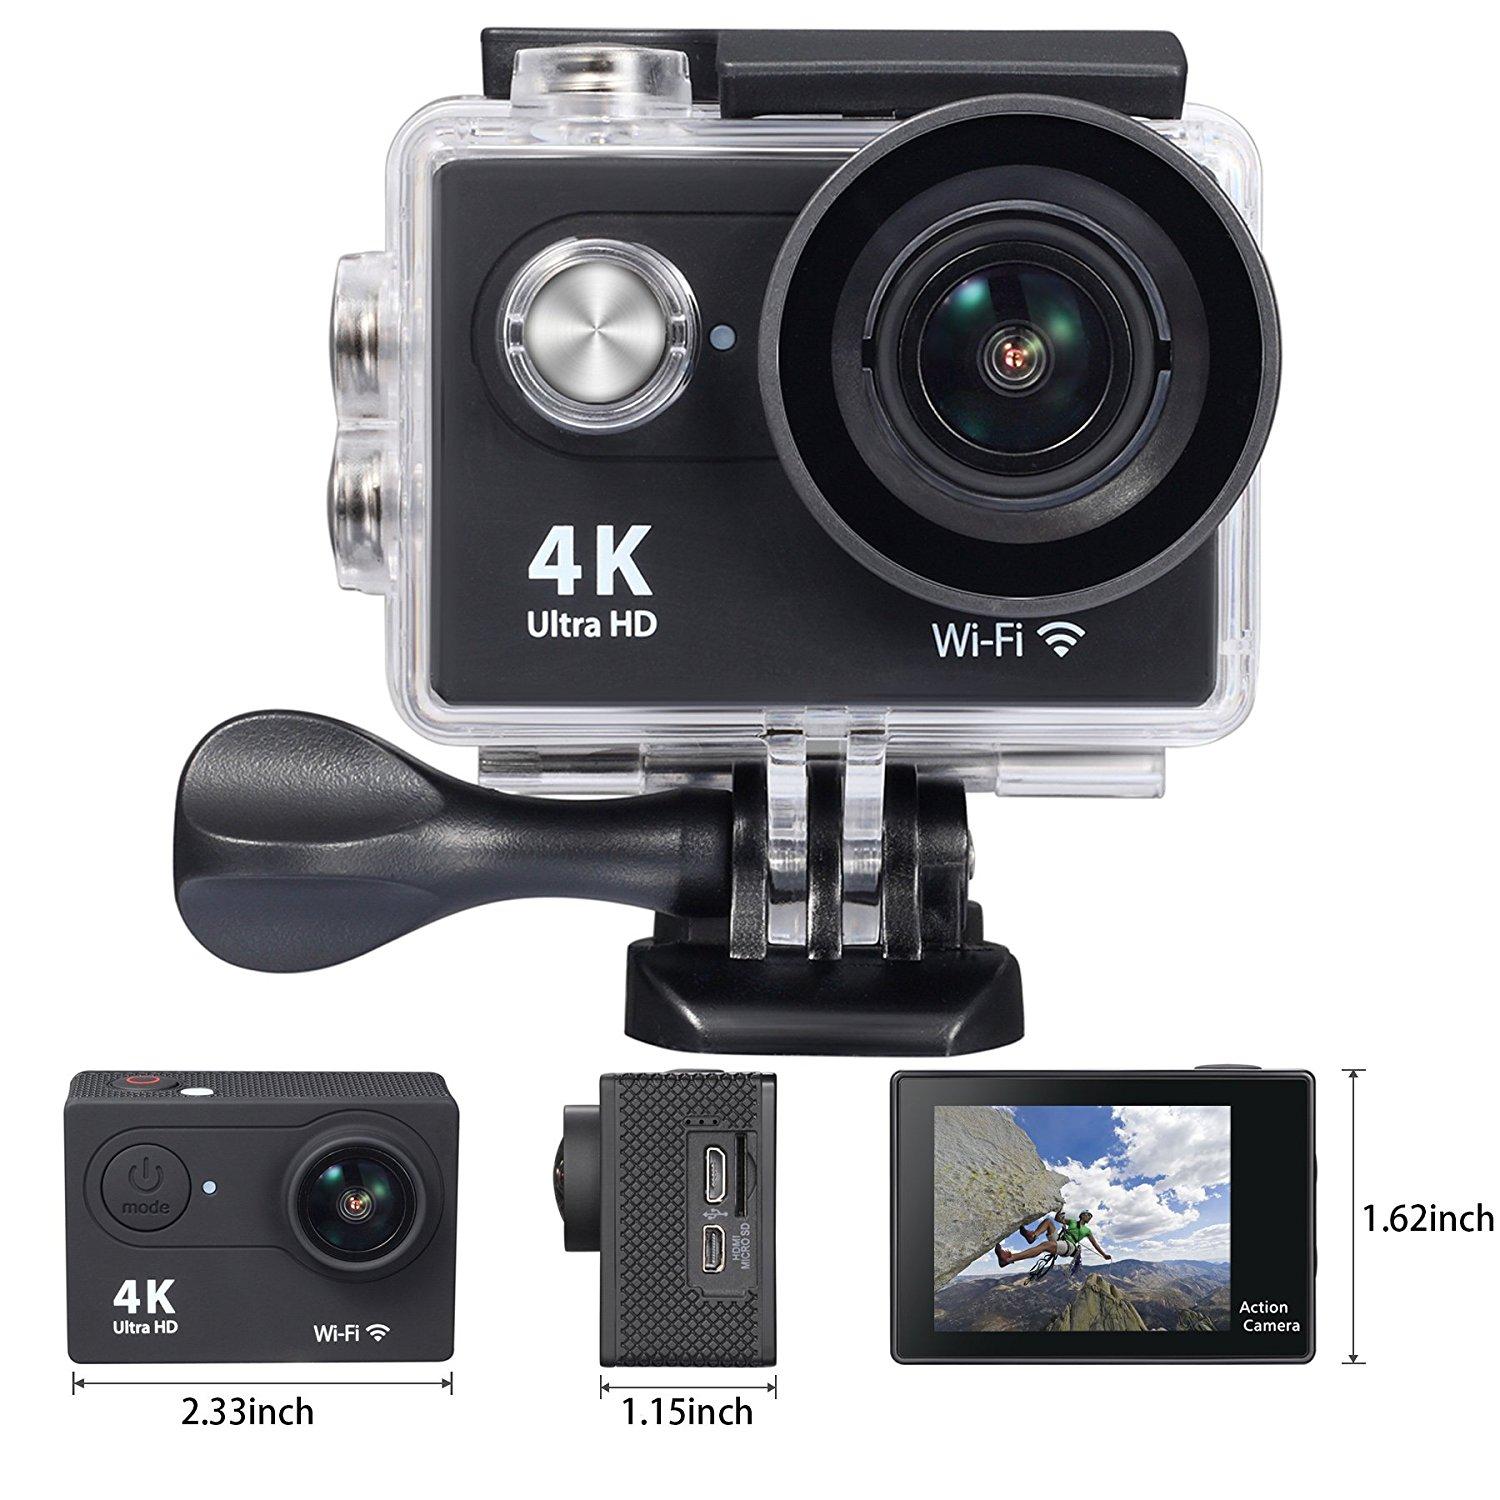 OnLyee 4K WIFI Sports Action Camera Ultra HD Waterproof DV Camcorder 12MP 170 Degree Wide Angle 2 inch LCD Screen/2.4G Remote Control/ Rechargeable Batteries  image 3